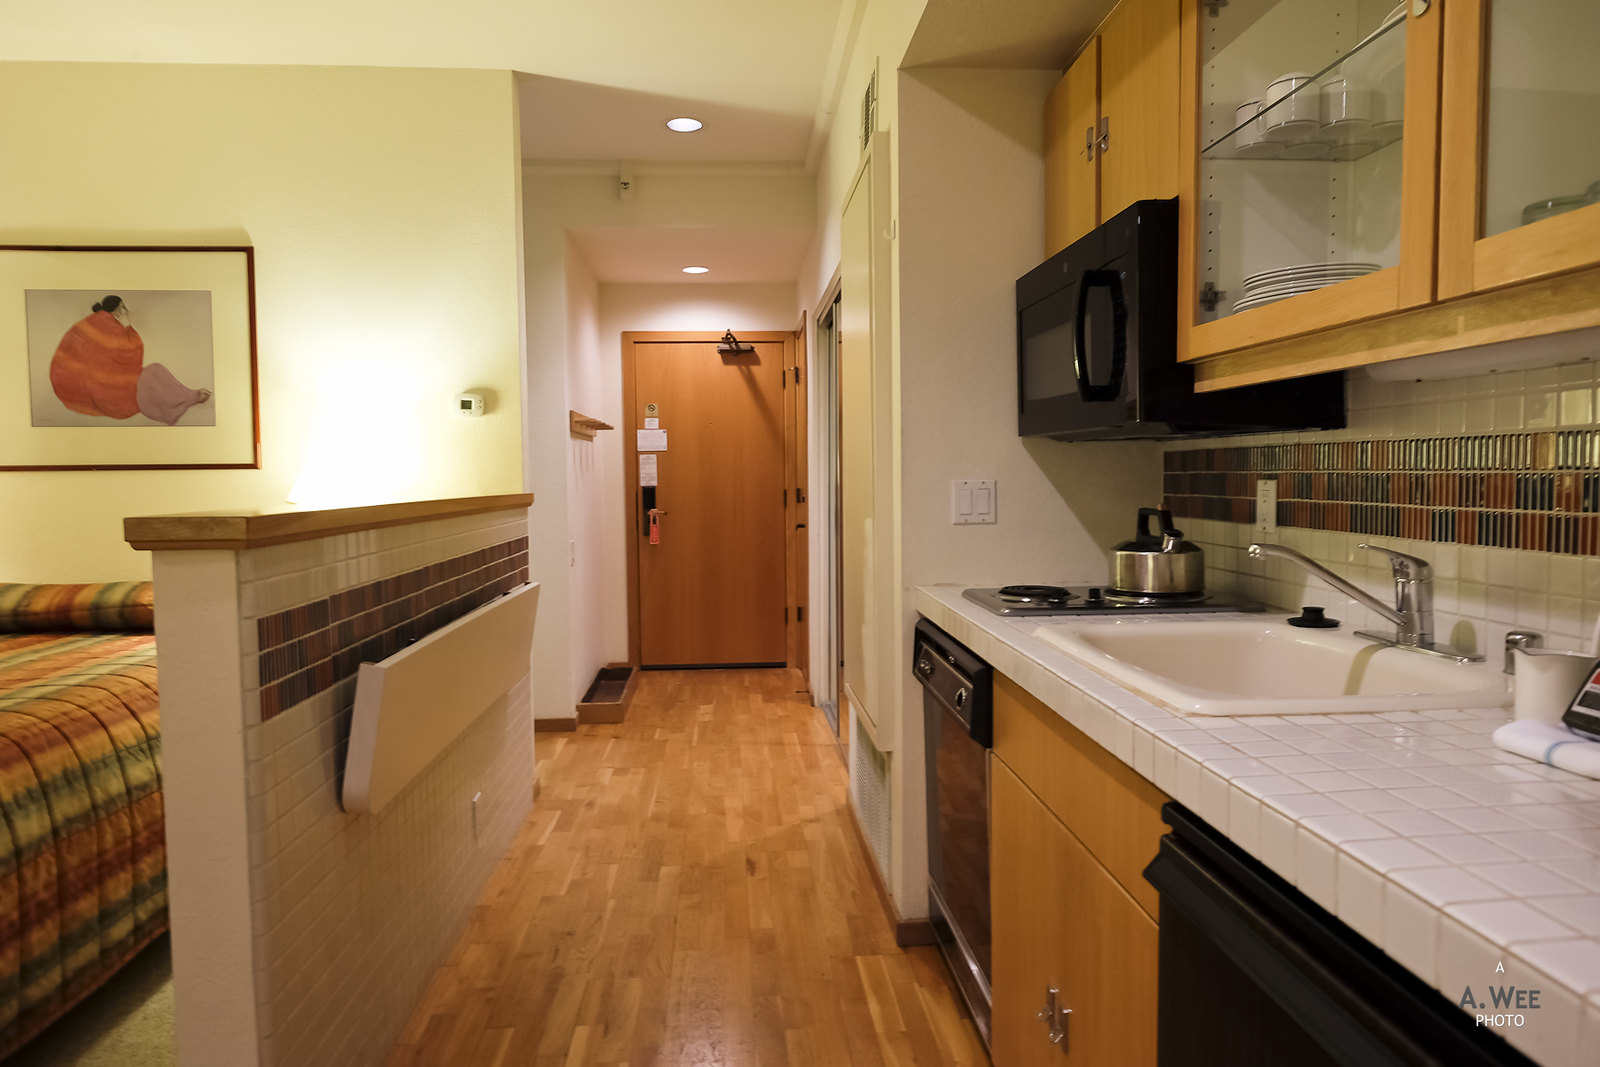 Kitchenette in the suite